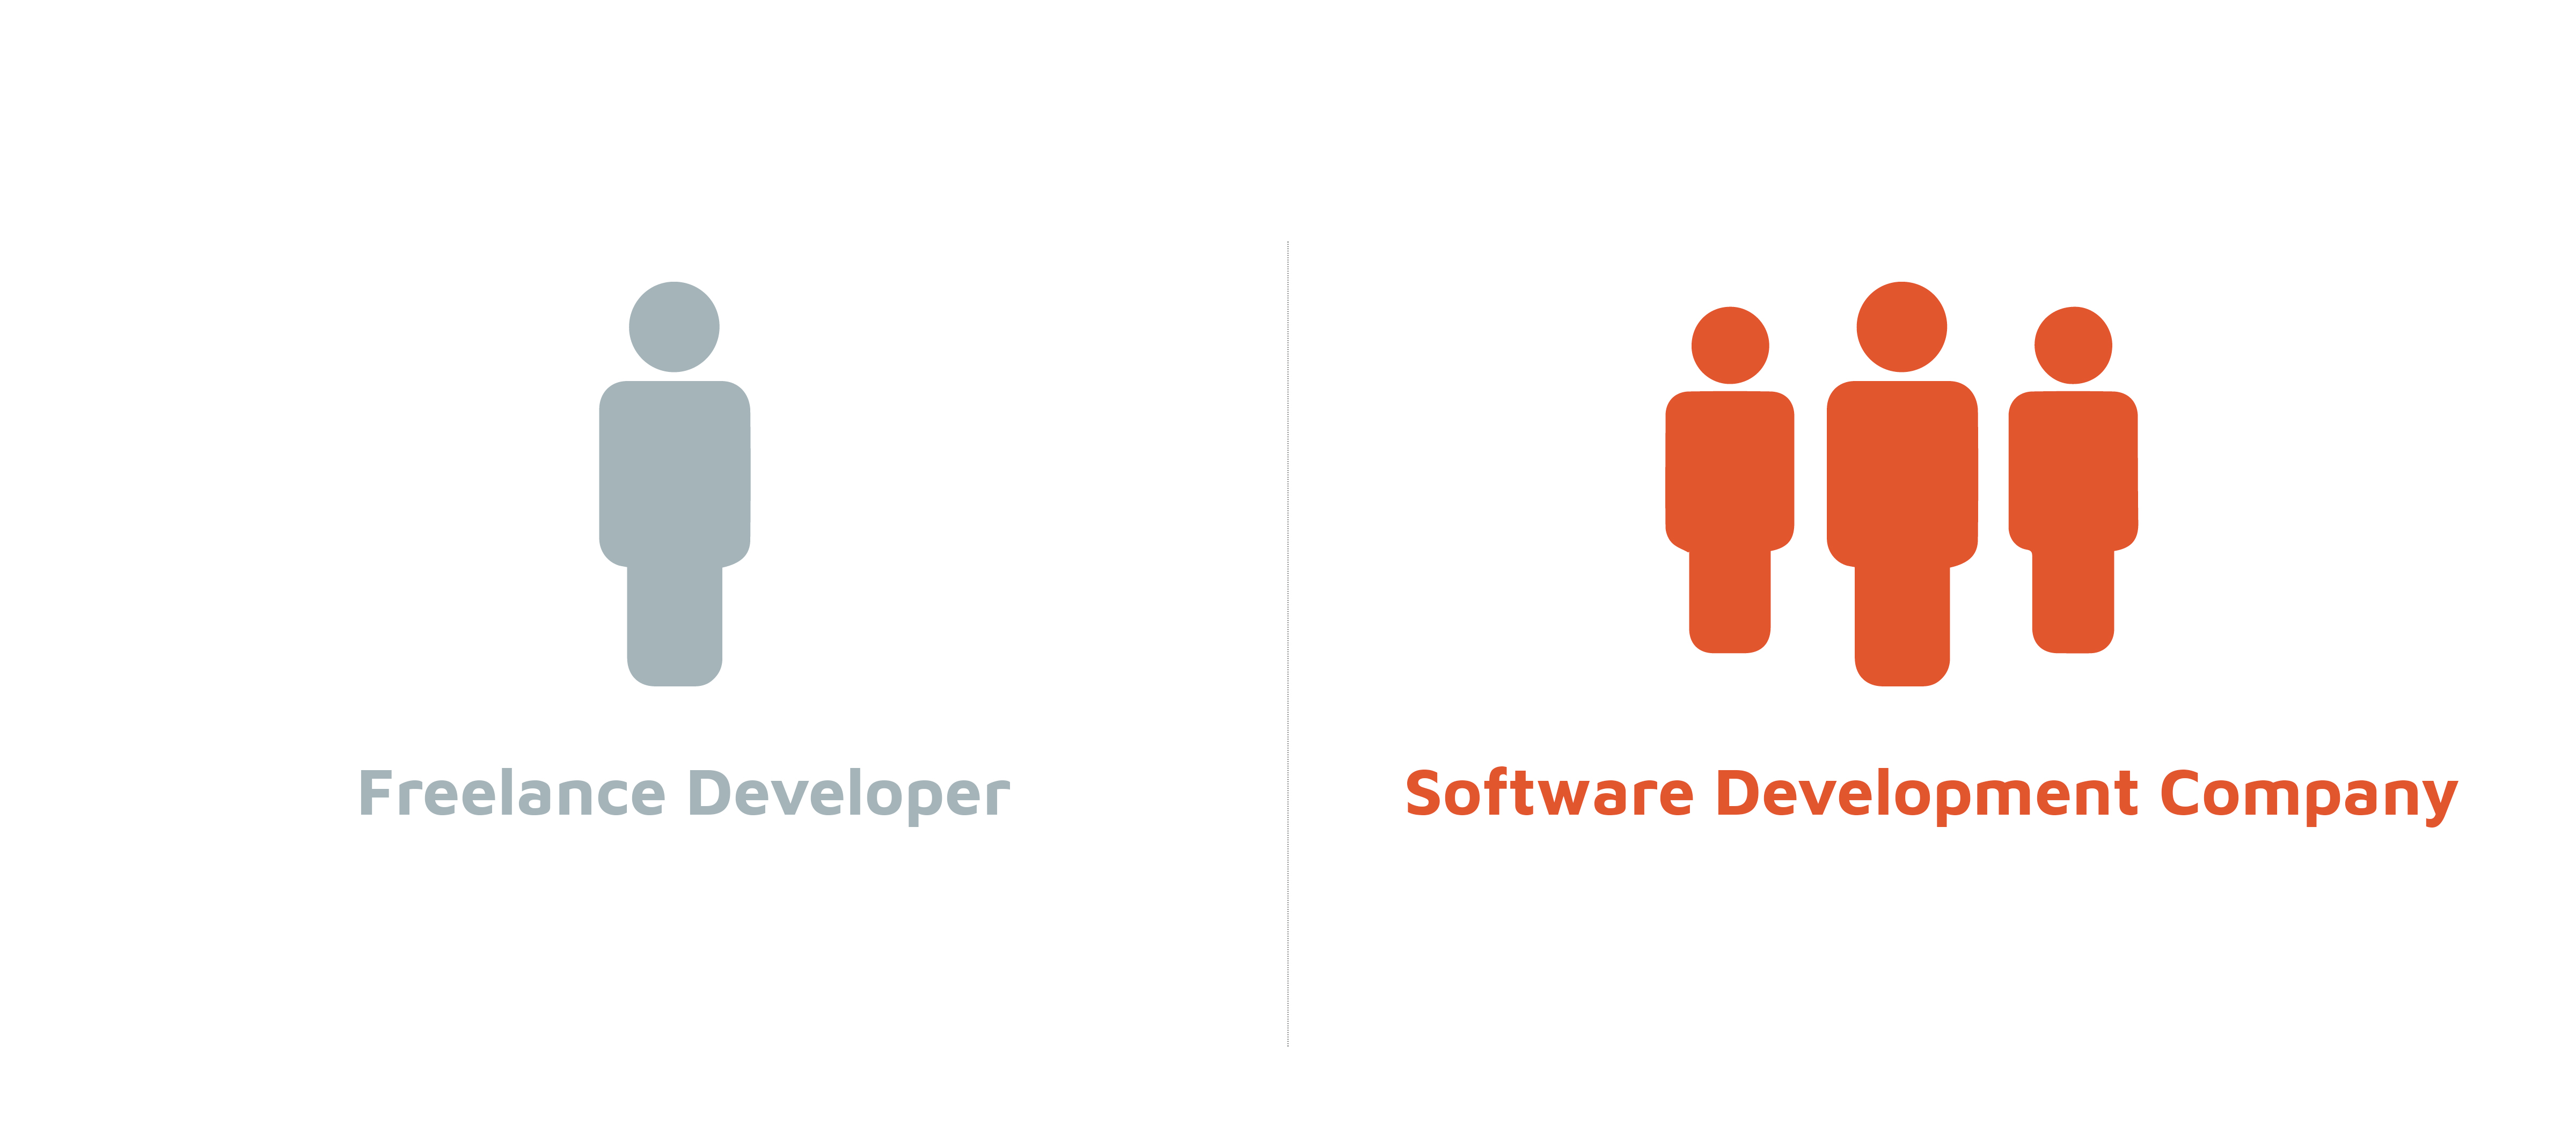 Should I hire a freelance developer or a software development company?